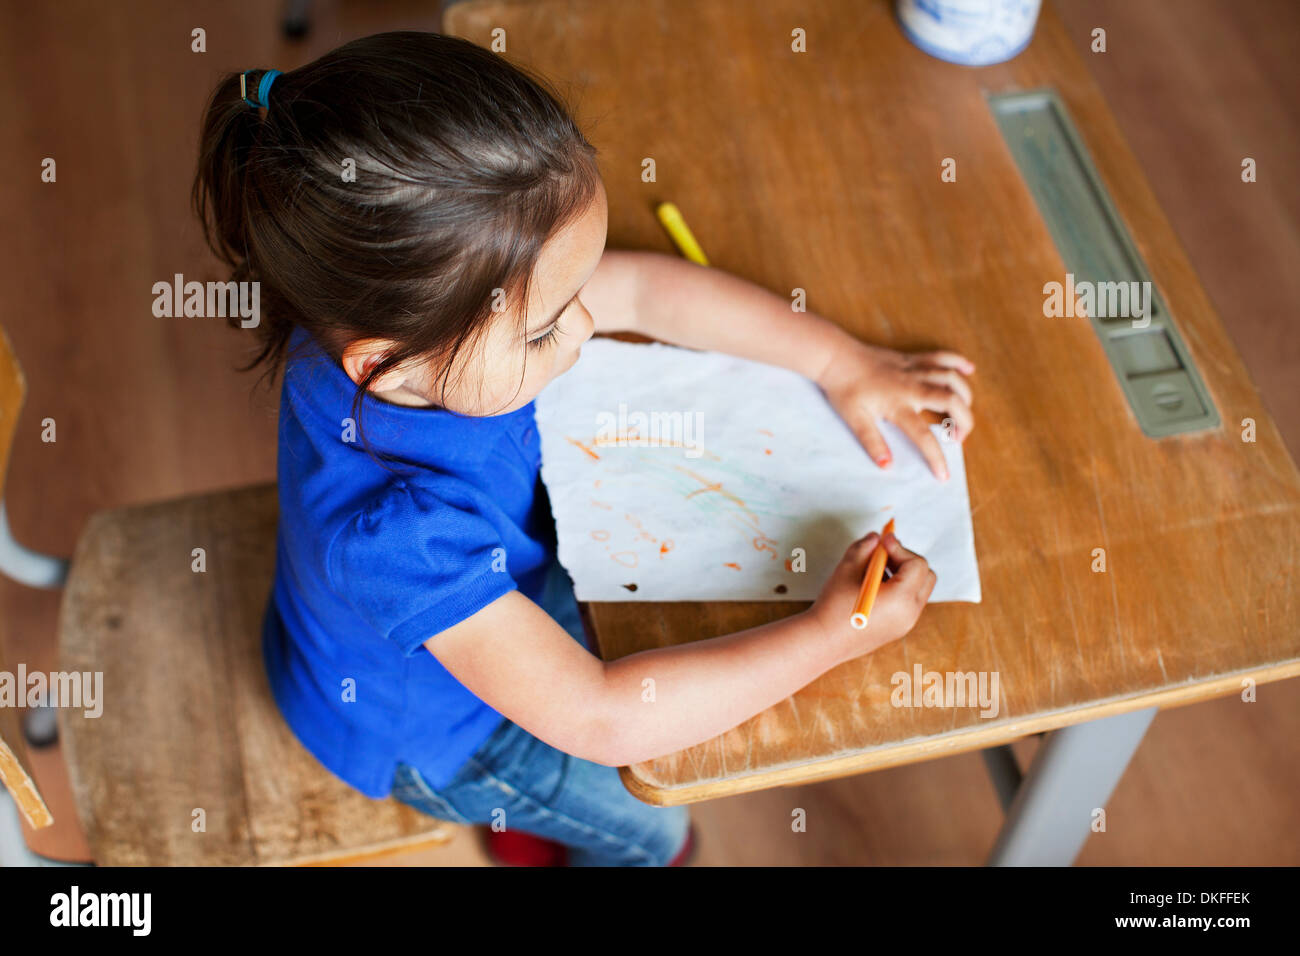 Girl drawing picture on desk, high angle - Stock Image